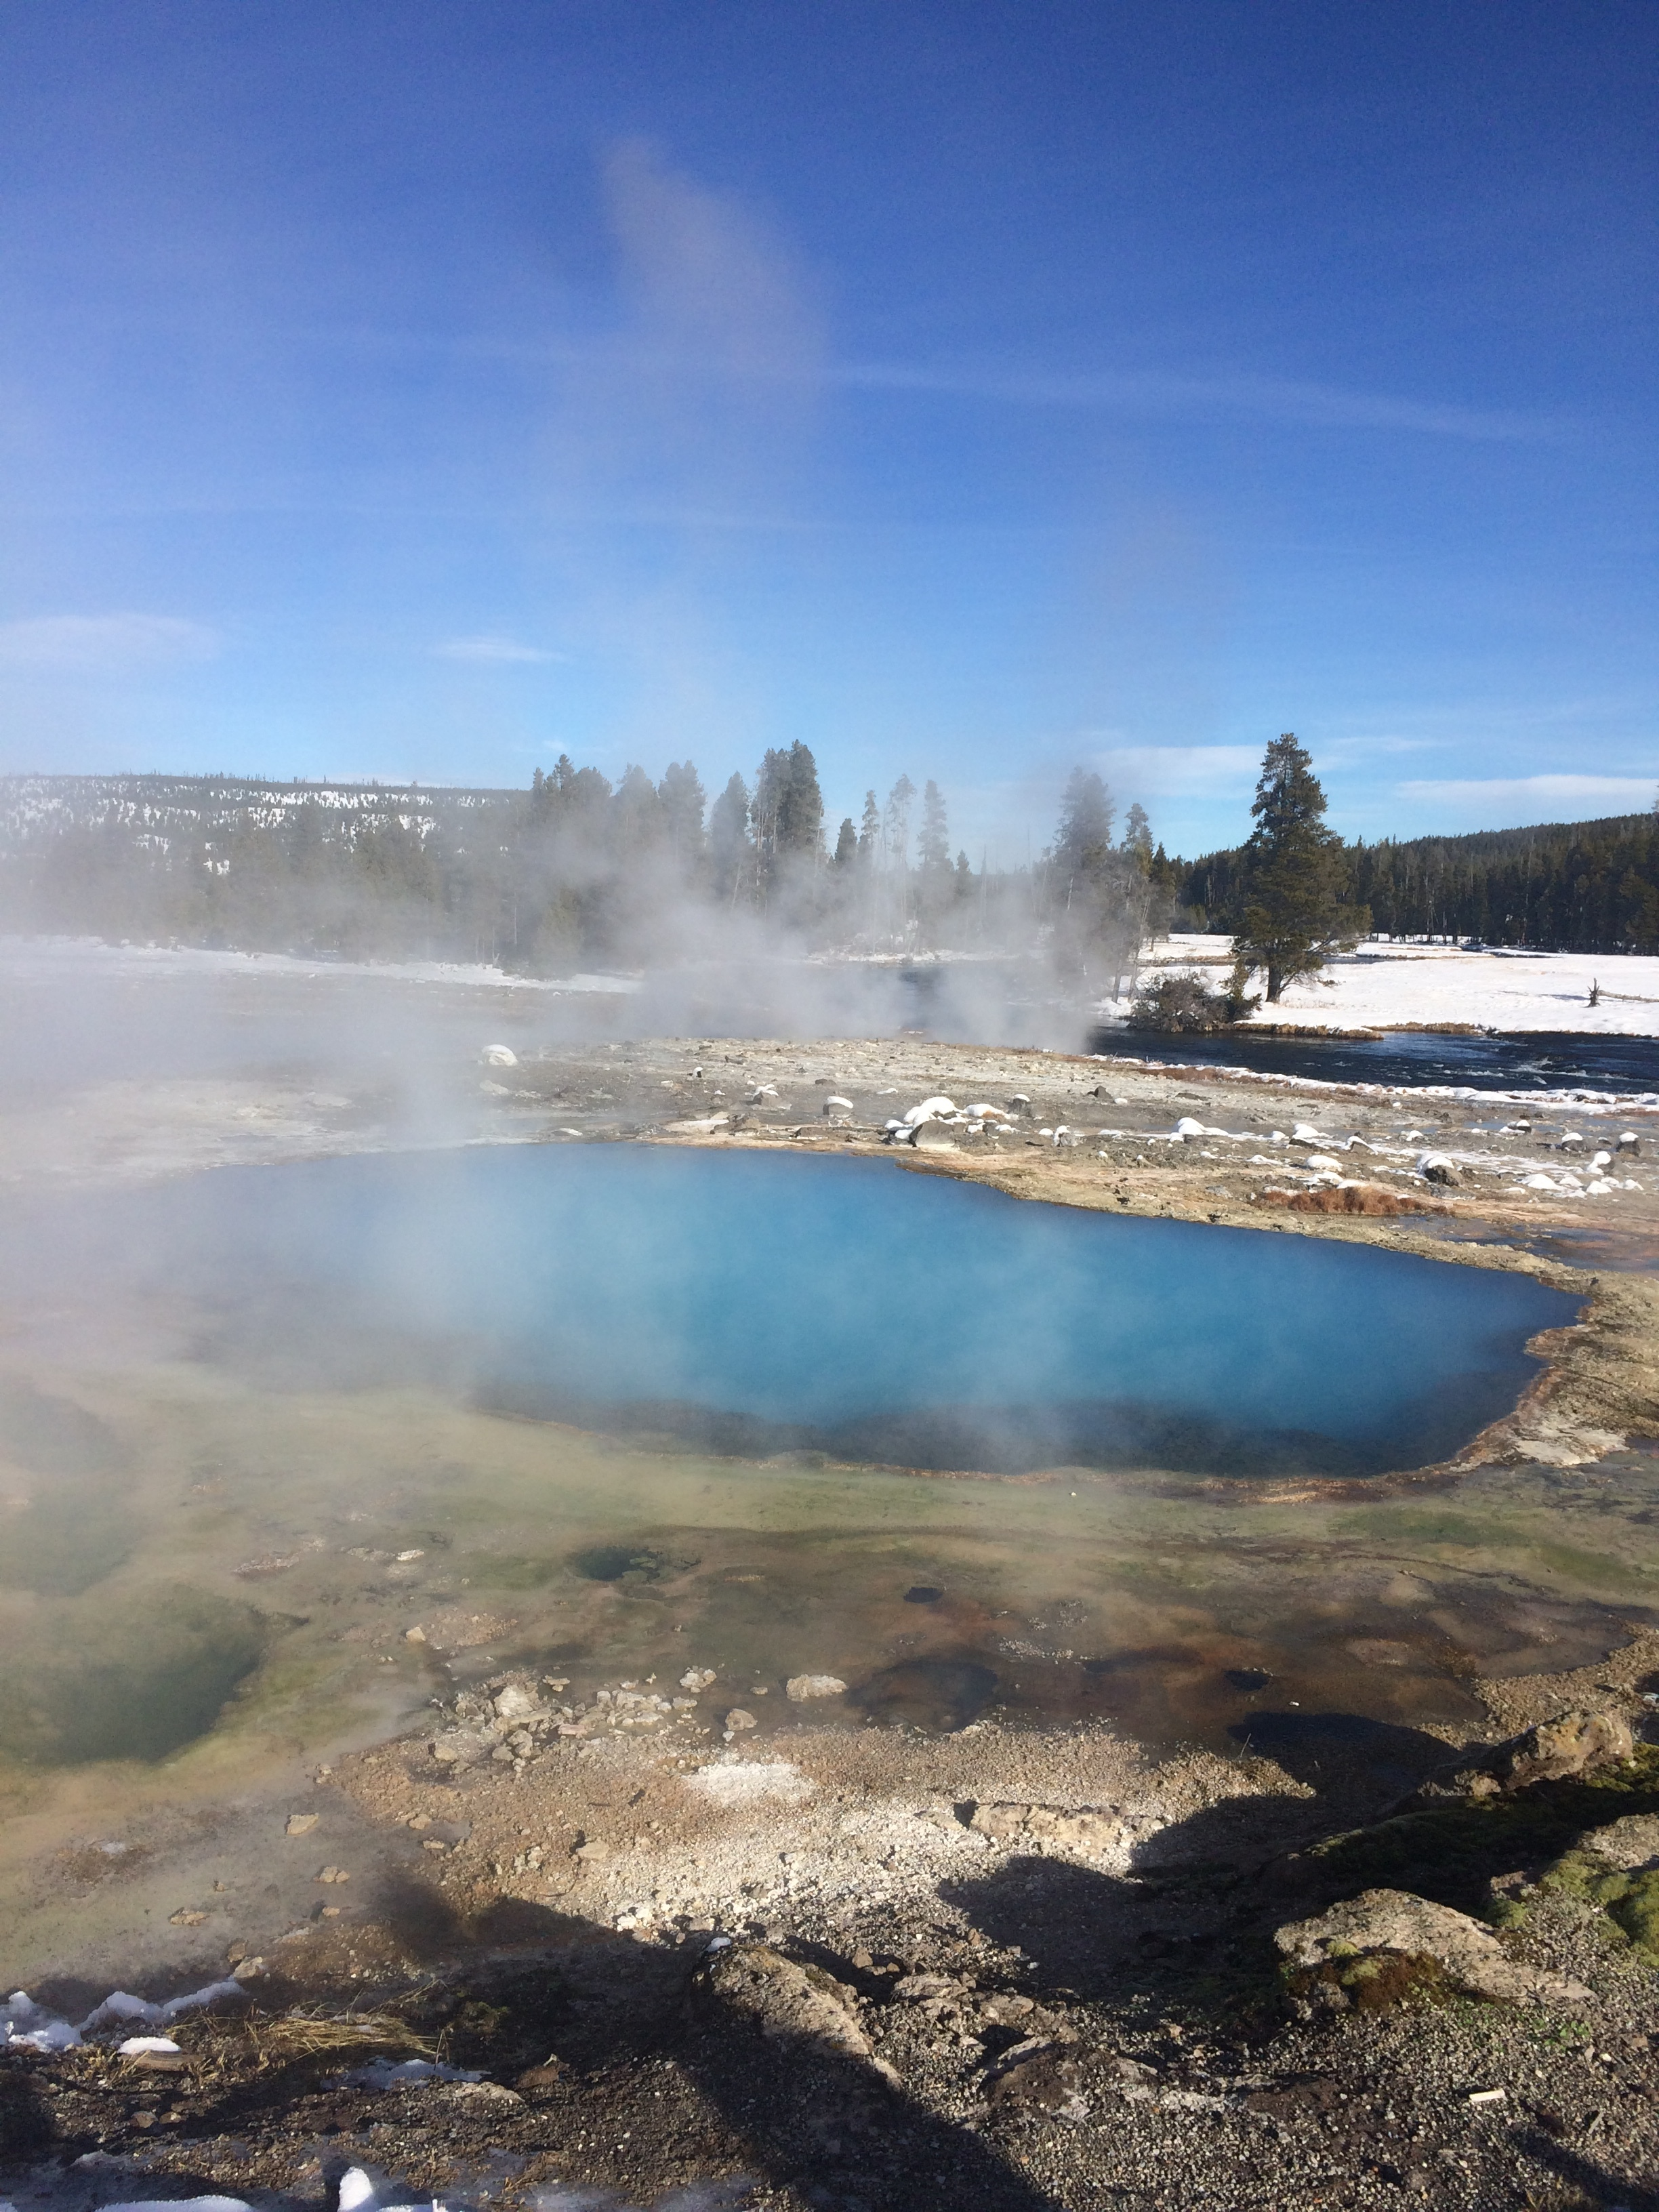 Colors in Yellowstone are indicative of temperatures. Different microbes live in different temperature ranges and the reflection of sunlight on those microbes creates different colors. However, blue indicates the scattering of sunlight which means there are no microbes living in that environment because its too hot.